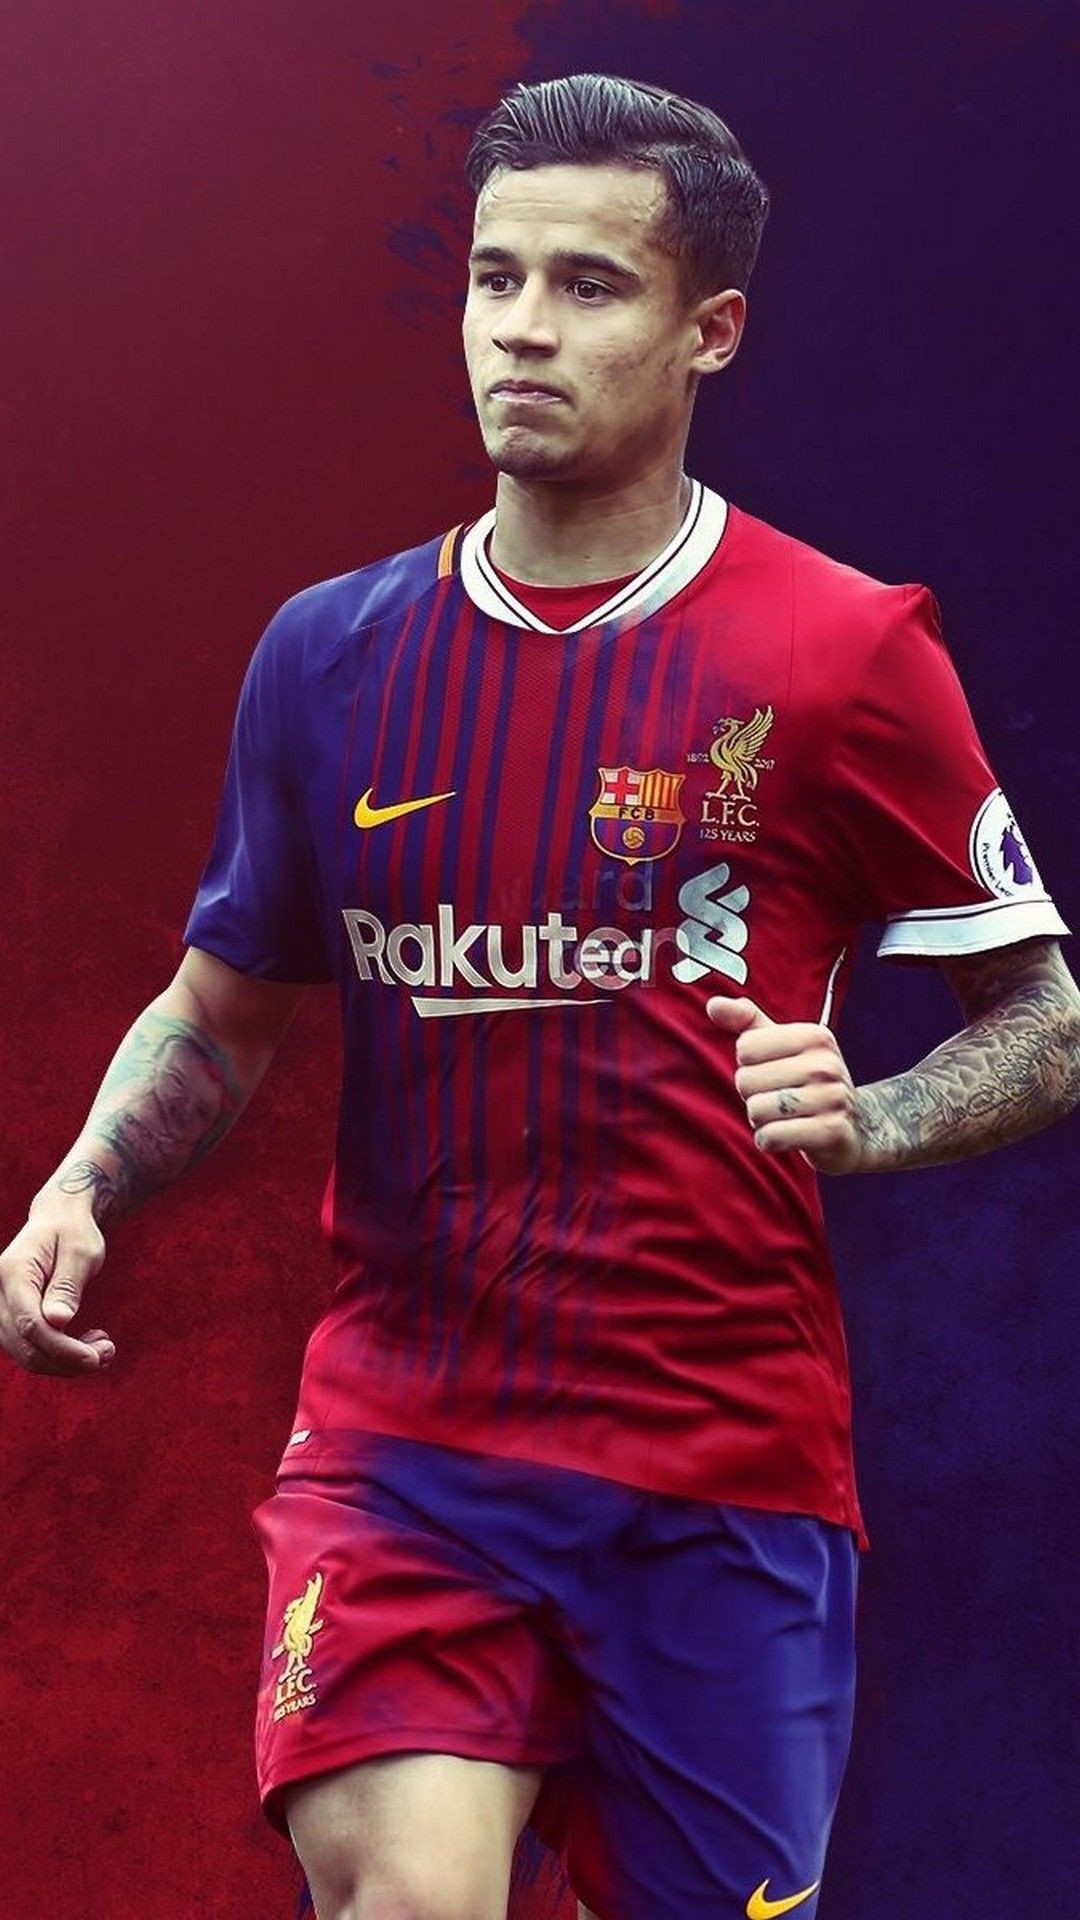 iPhone X Wallpaper Coutinho Barcelona - Best iPhone Wallpaper